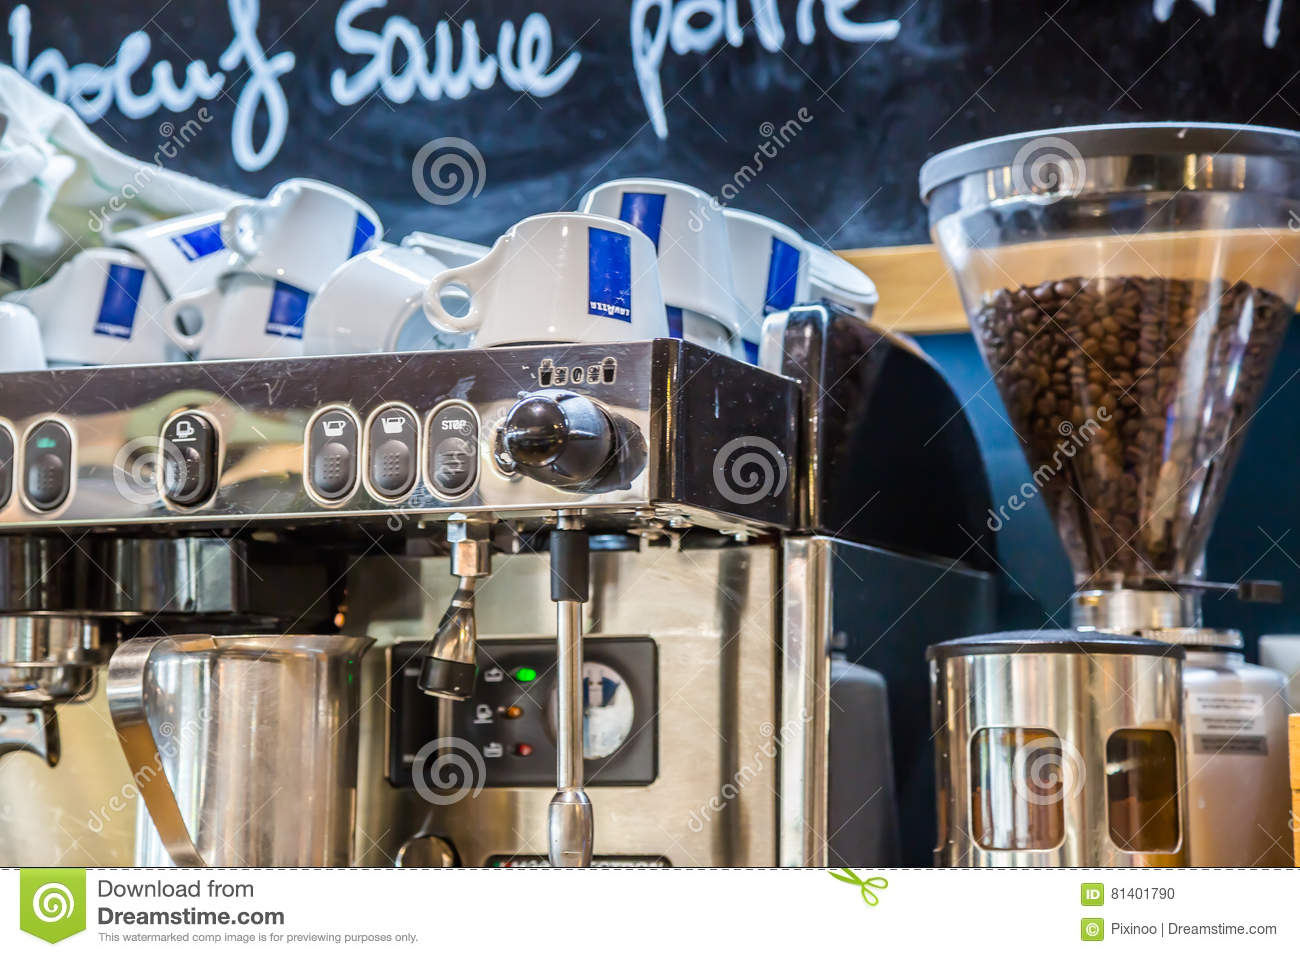 La defense, France - July 17, 2016: inside view on percolator and coffee grinder of big traditional french restaurant in la